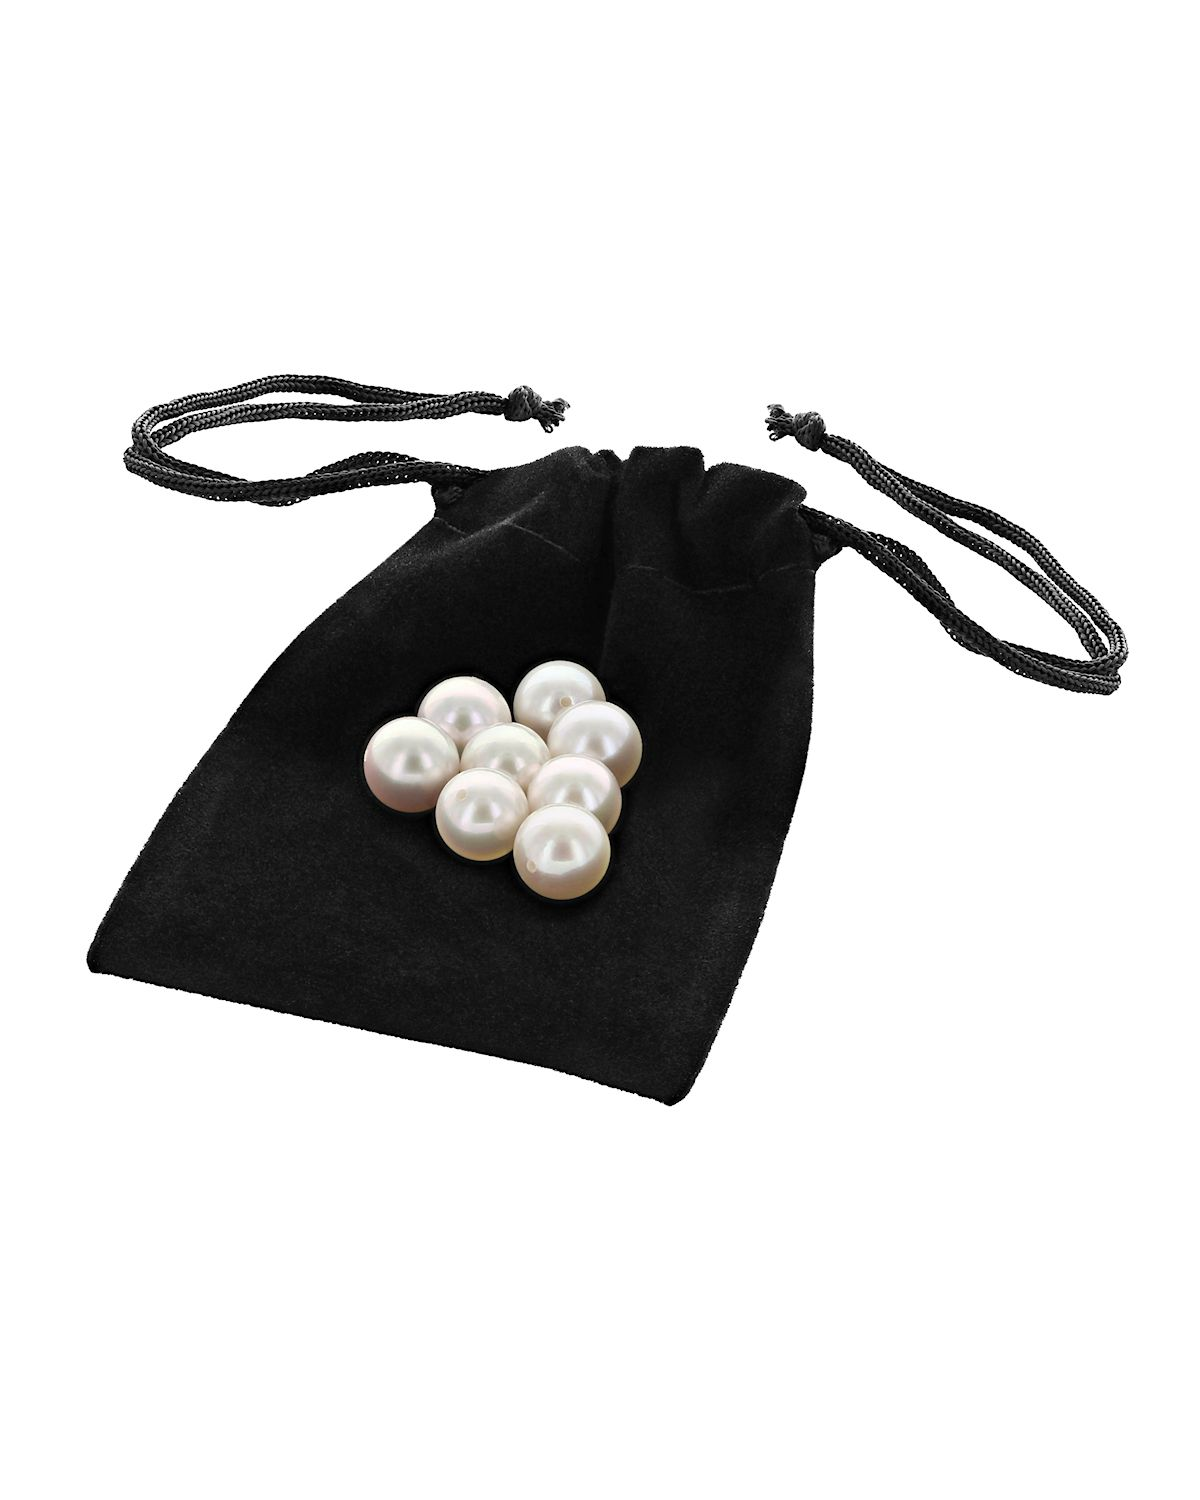 Pearl Moments - 7.5-8.0mm Akoya Additional Loose Pearls